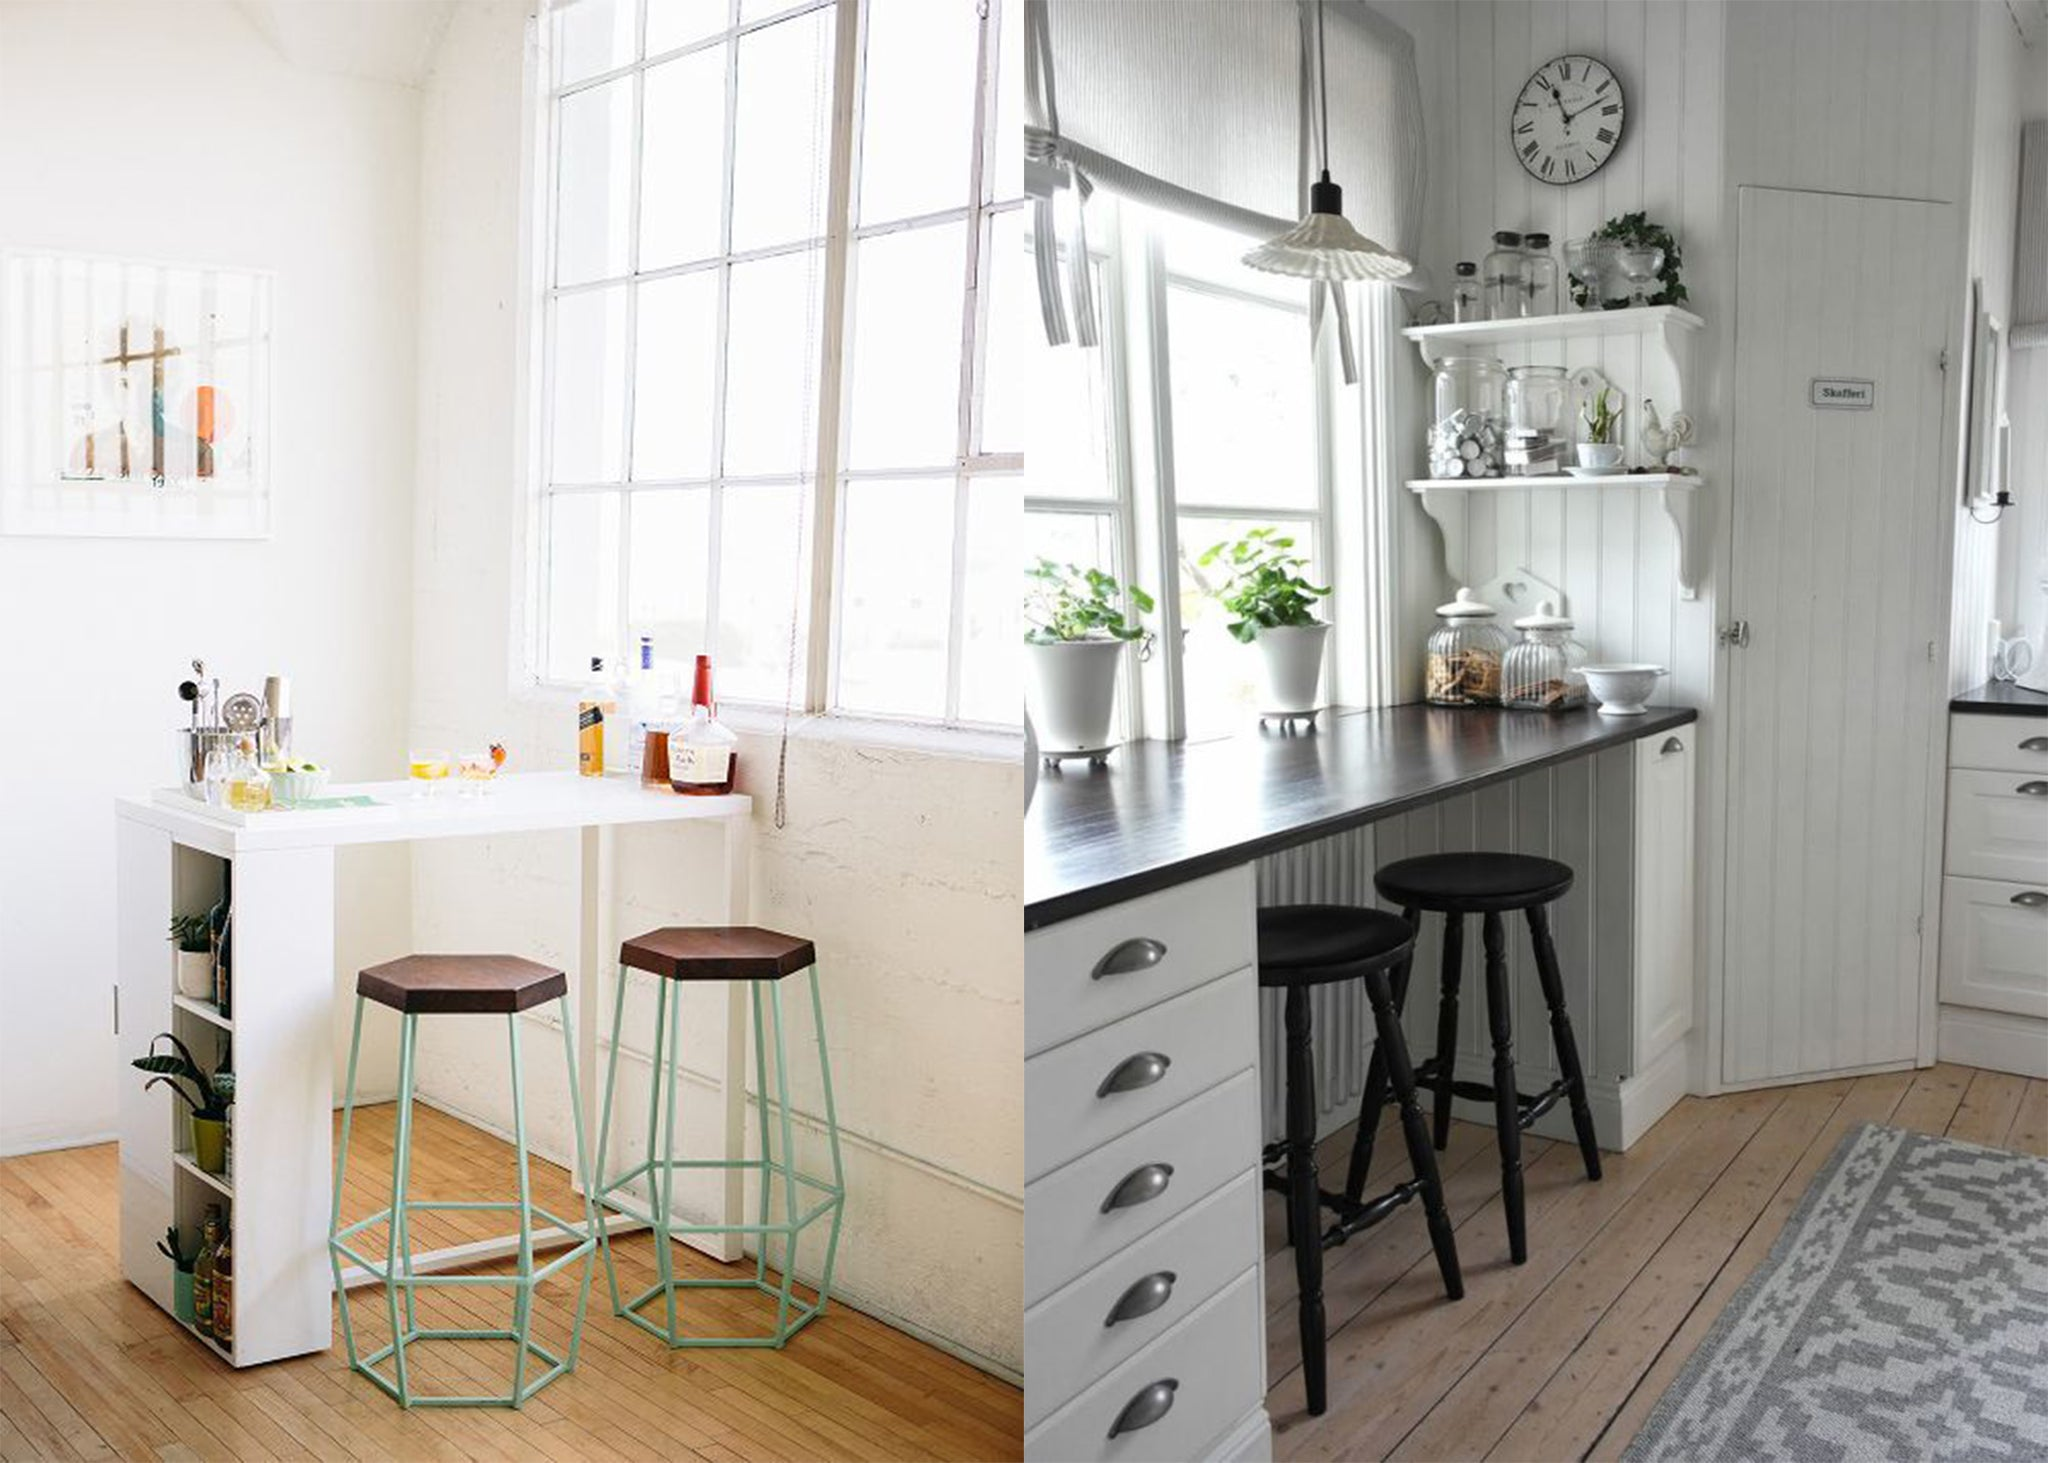 Ideas on how to utilise small spaces